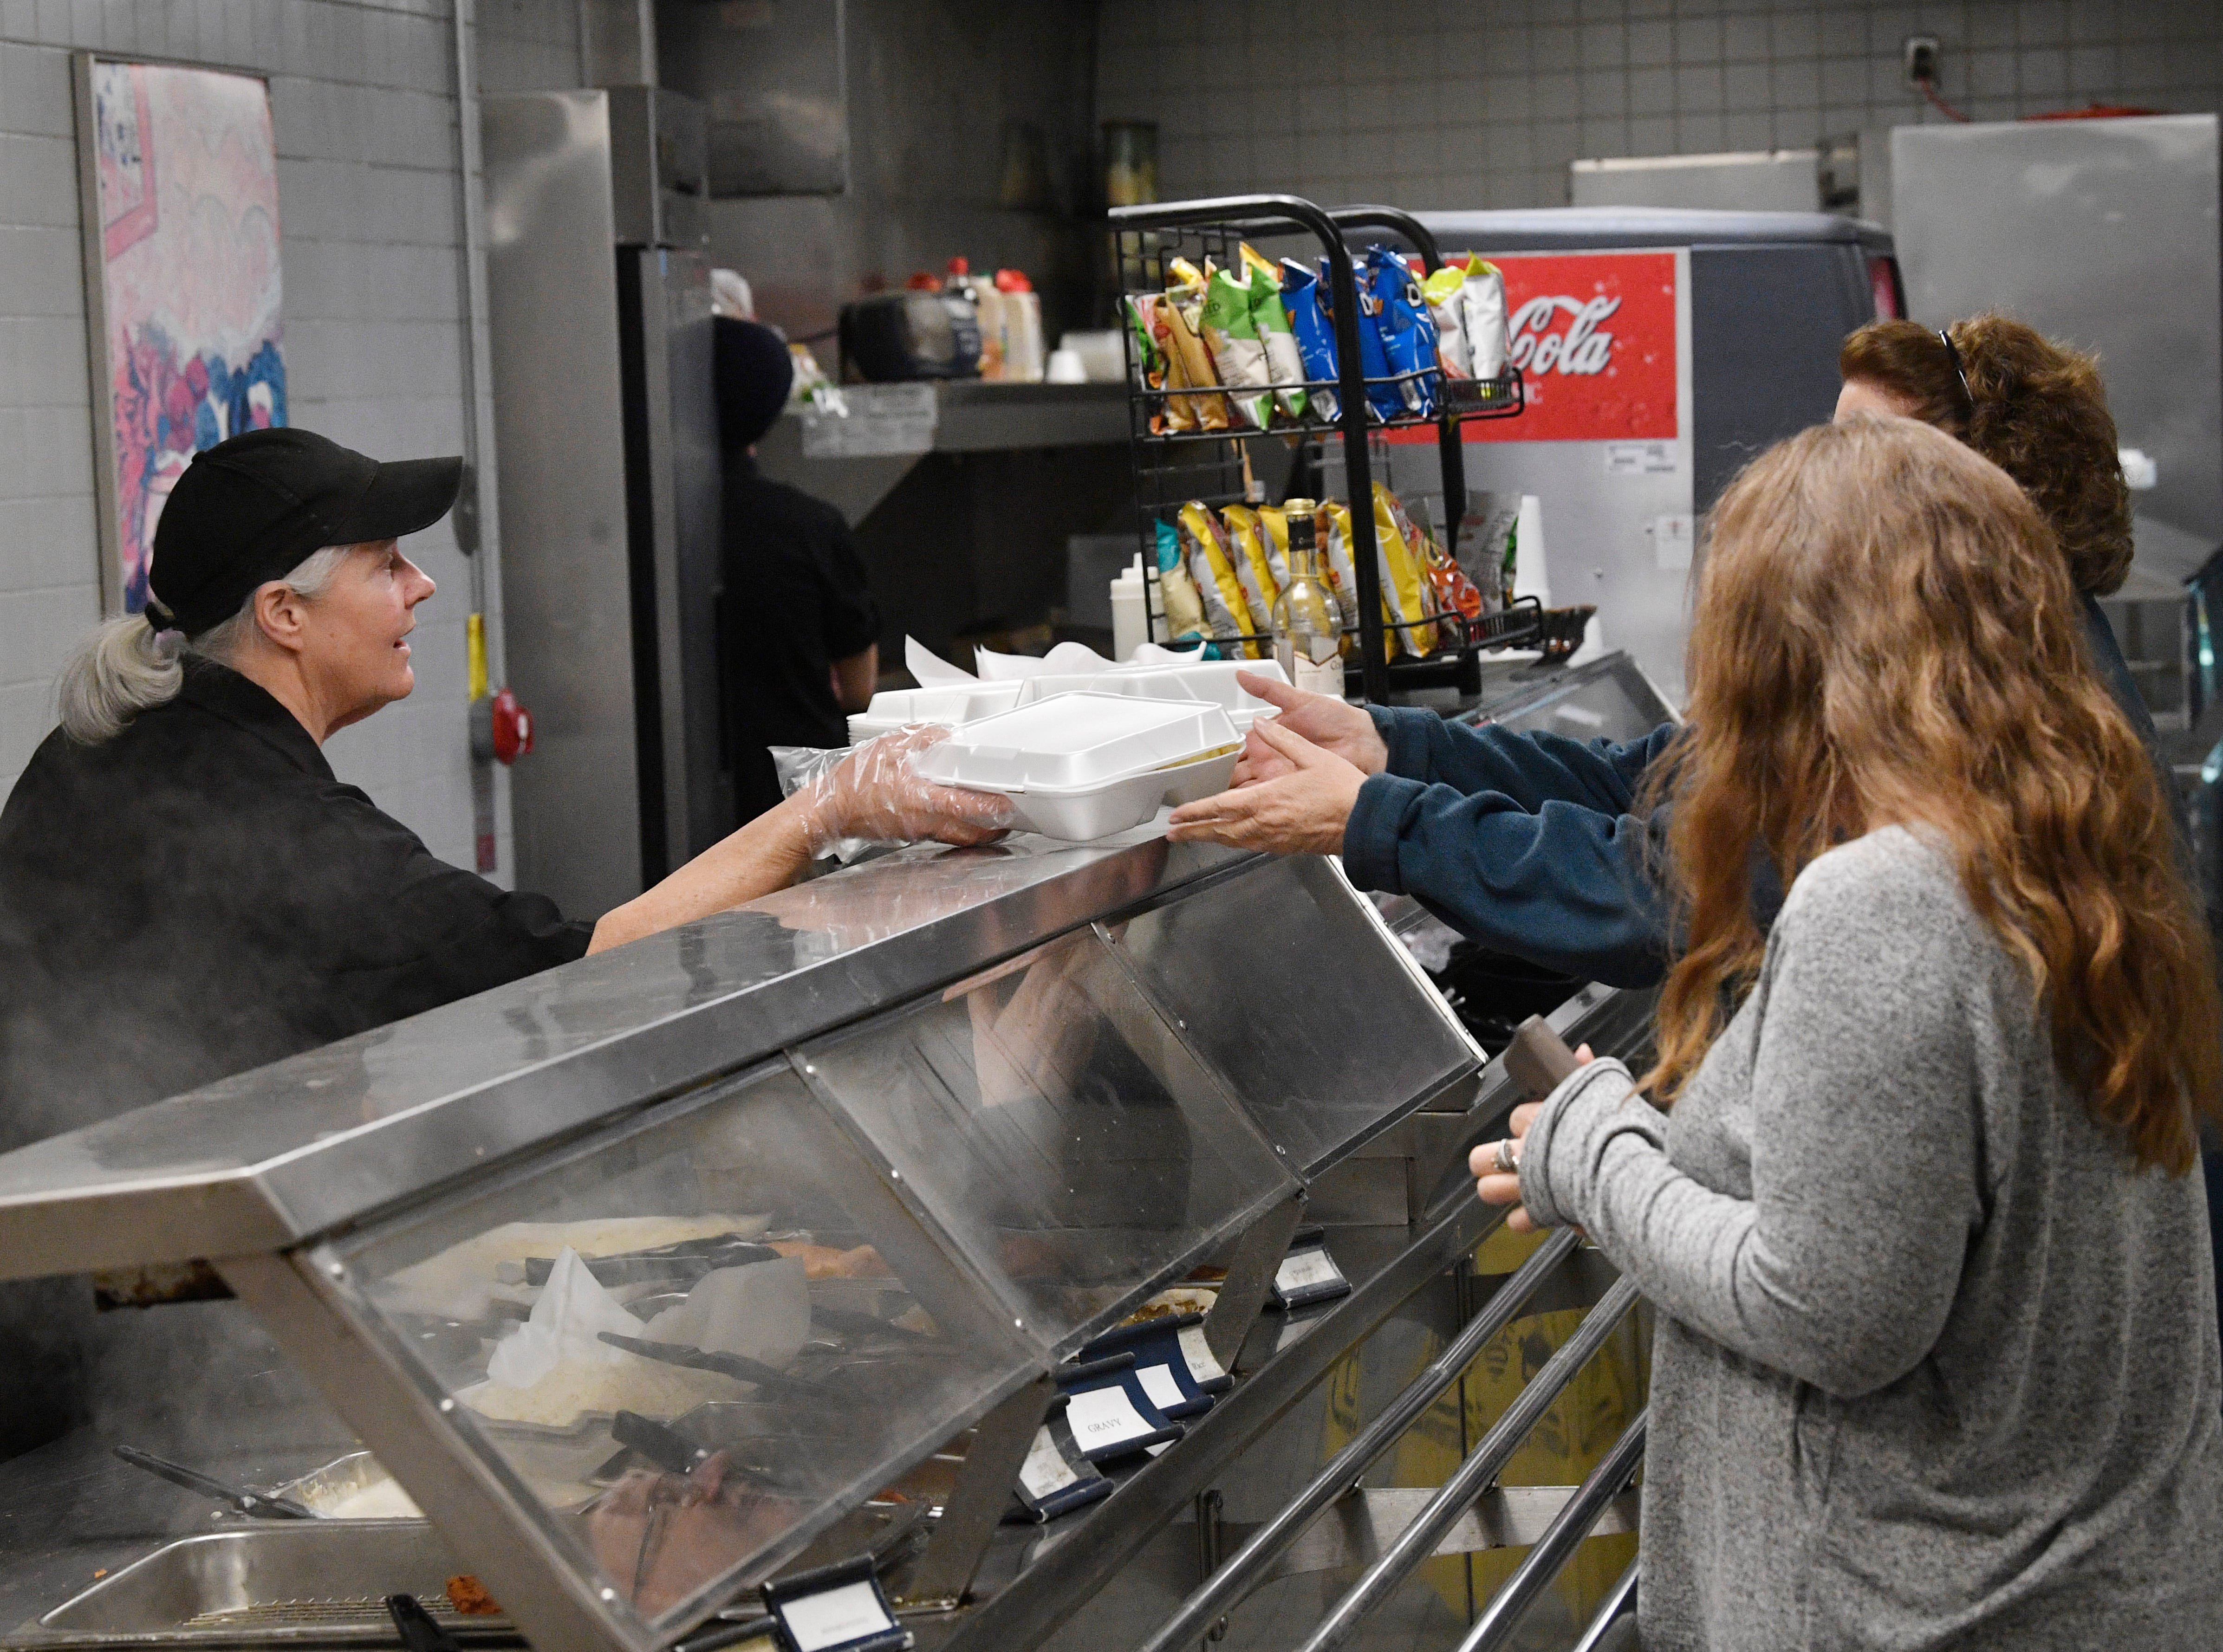 Judy Pourviseh dishes out food in the cafeteria at 1100 Broadway on Wednesday, Jan. 16, 2019, in Nashville.